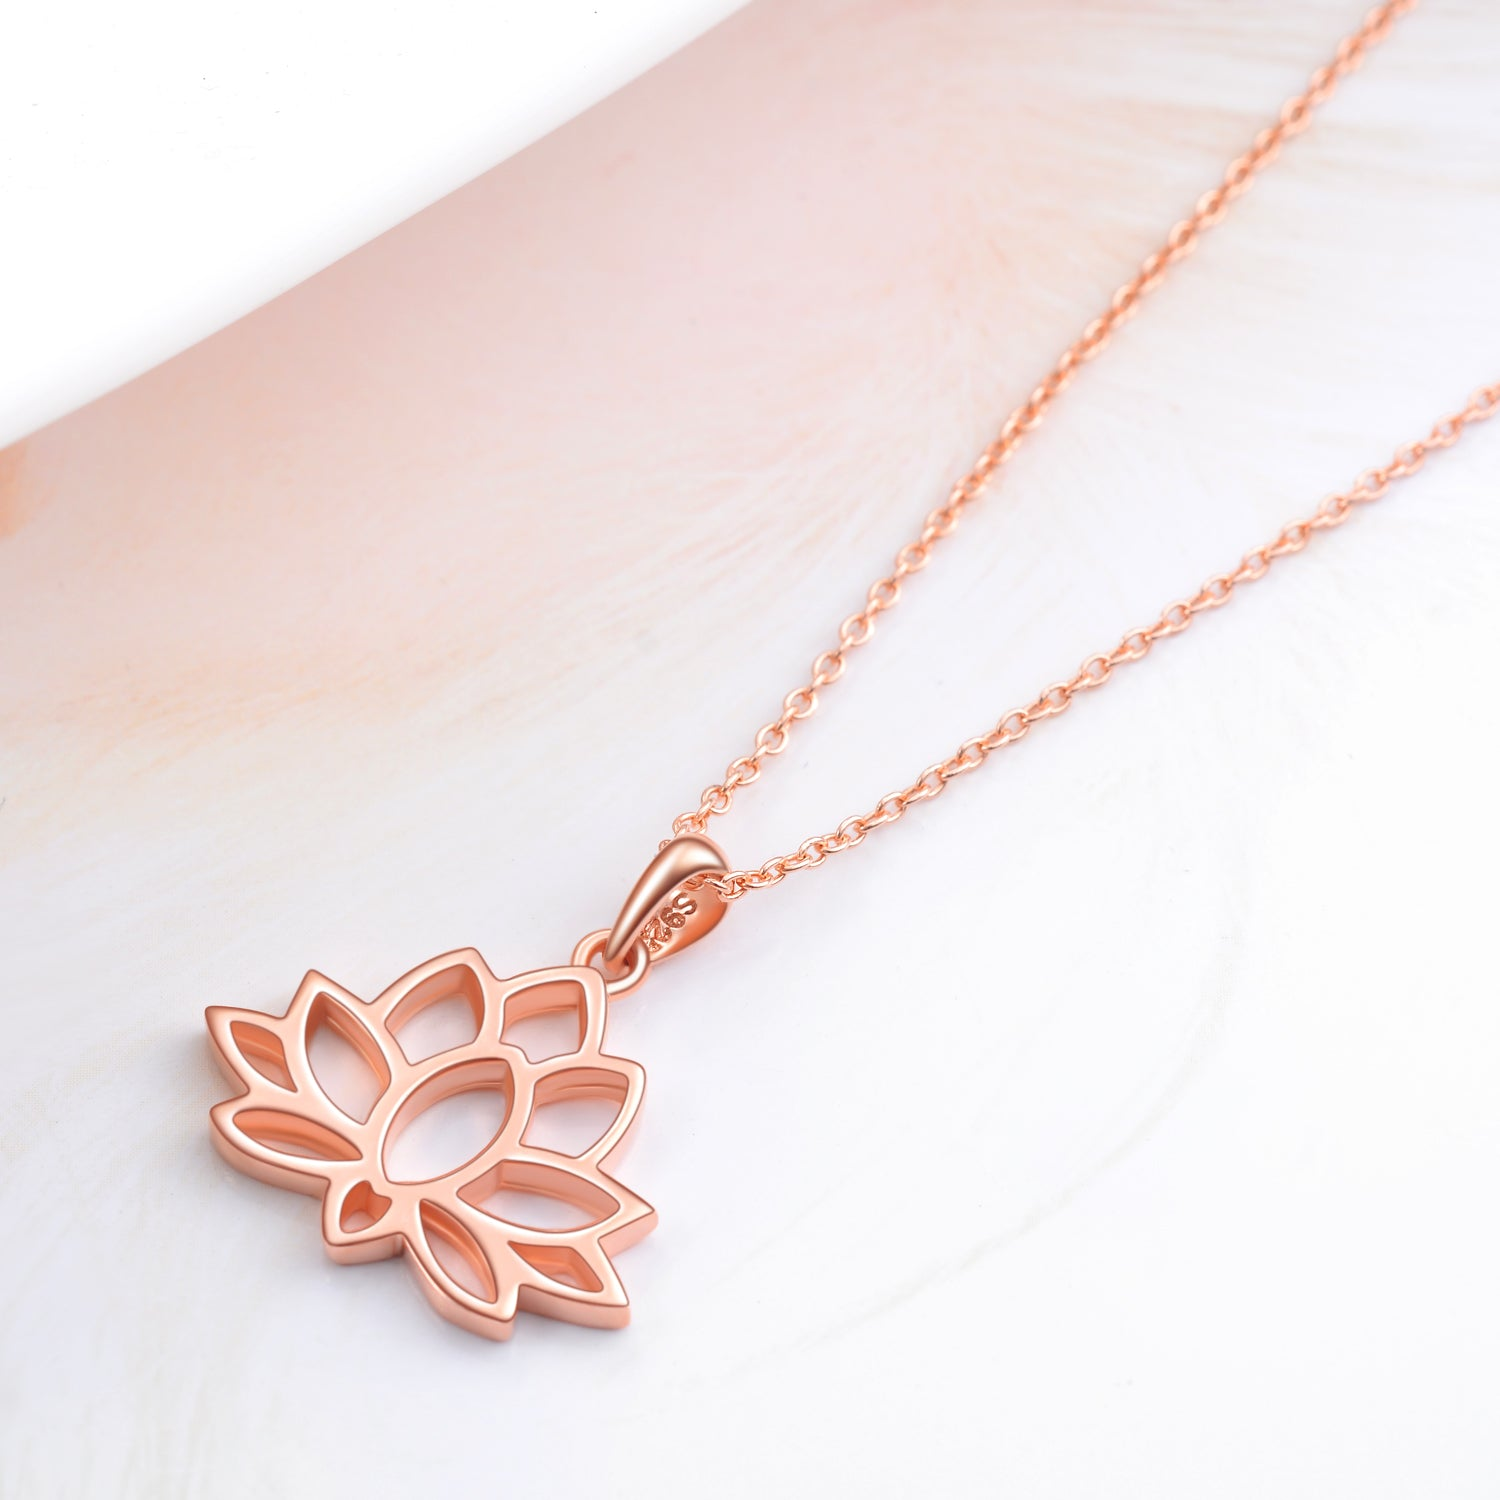 Lotus Engraved Necklace Water Lily Shape Chain Plant Design Necklace